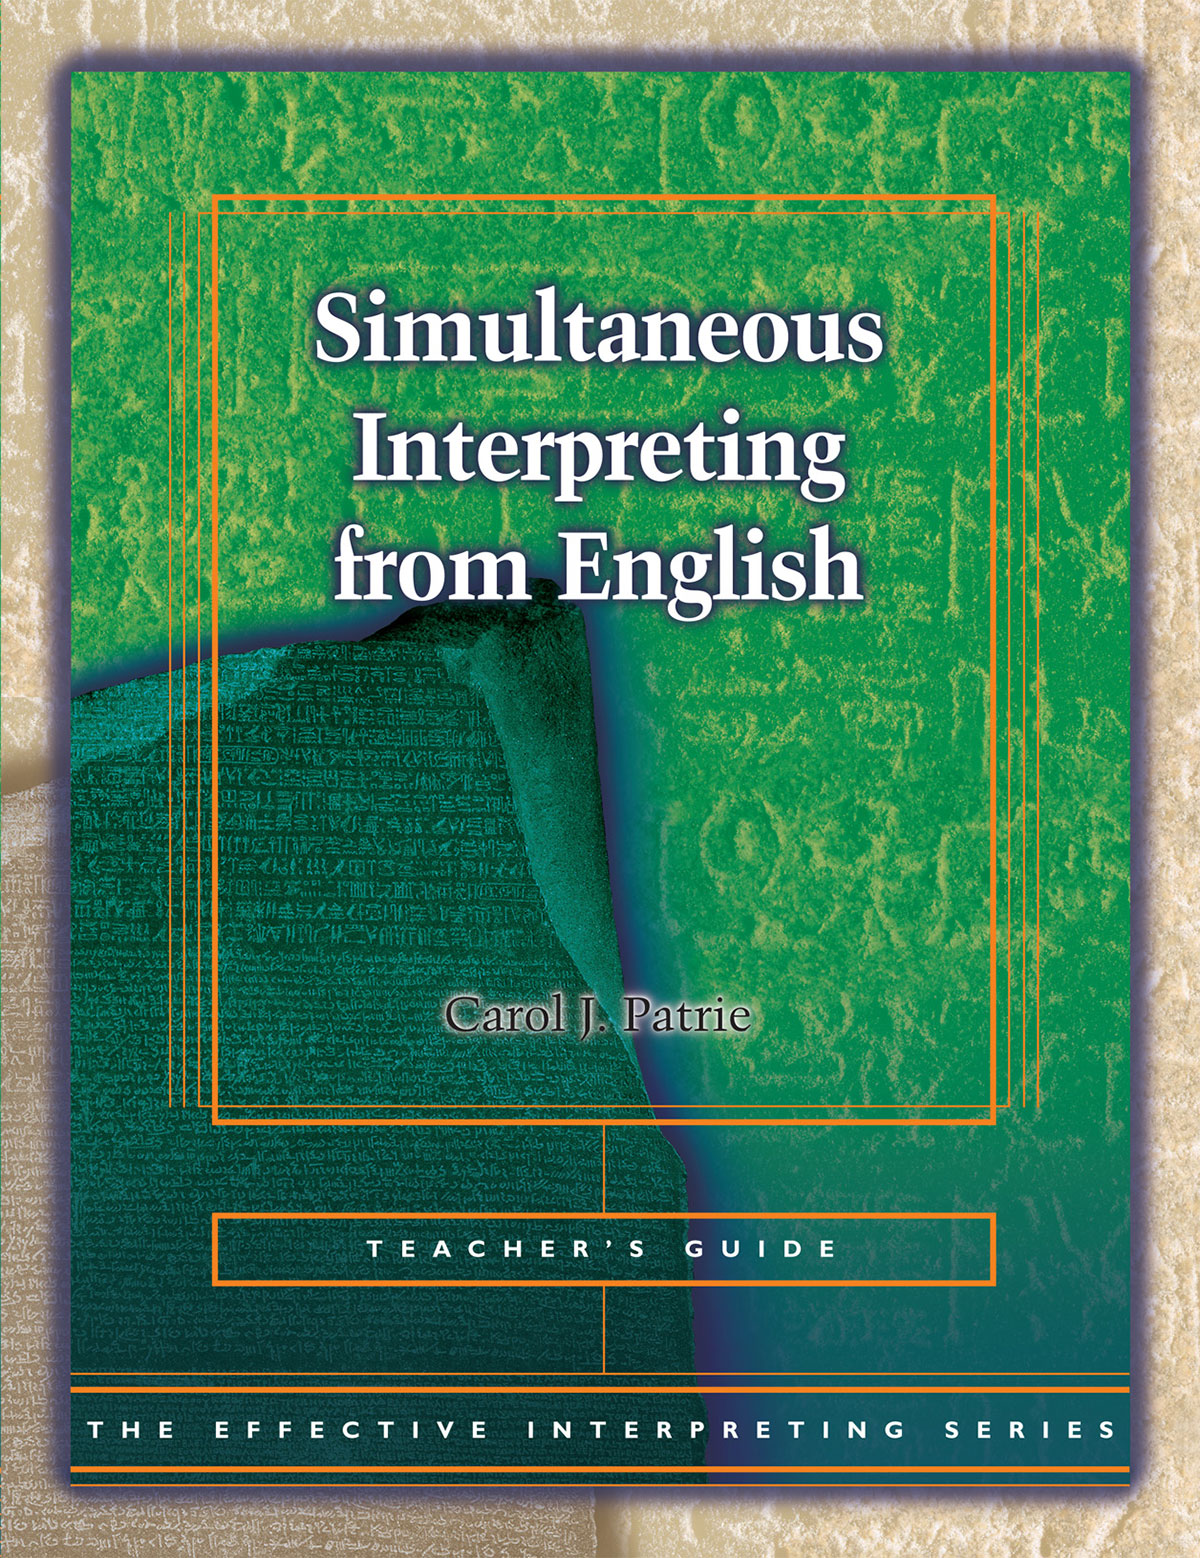 The Effective Interpreting Series: Simultaneous Interpreting from English - Teacher's Set